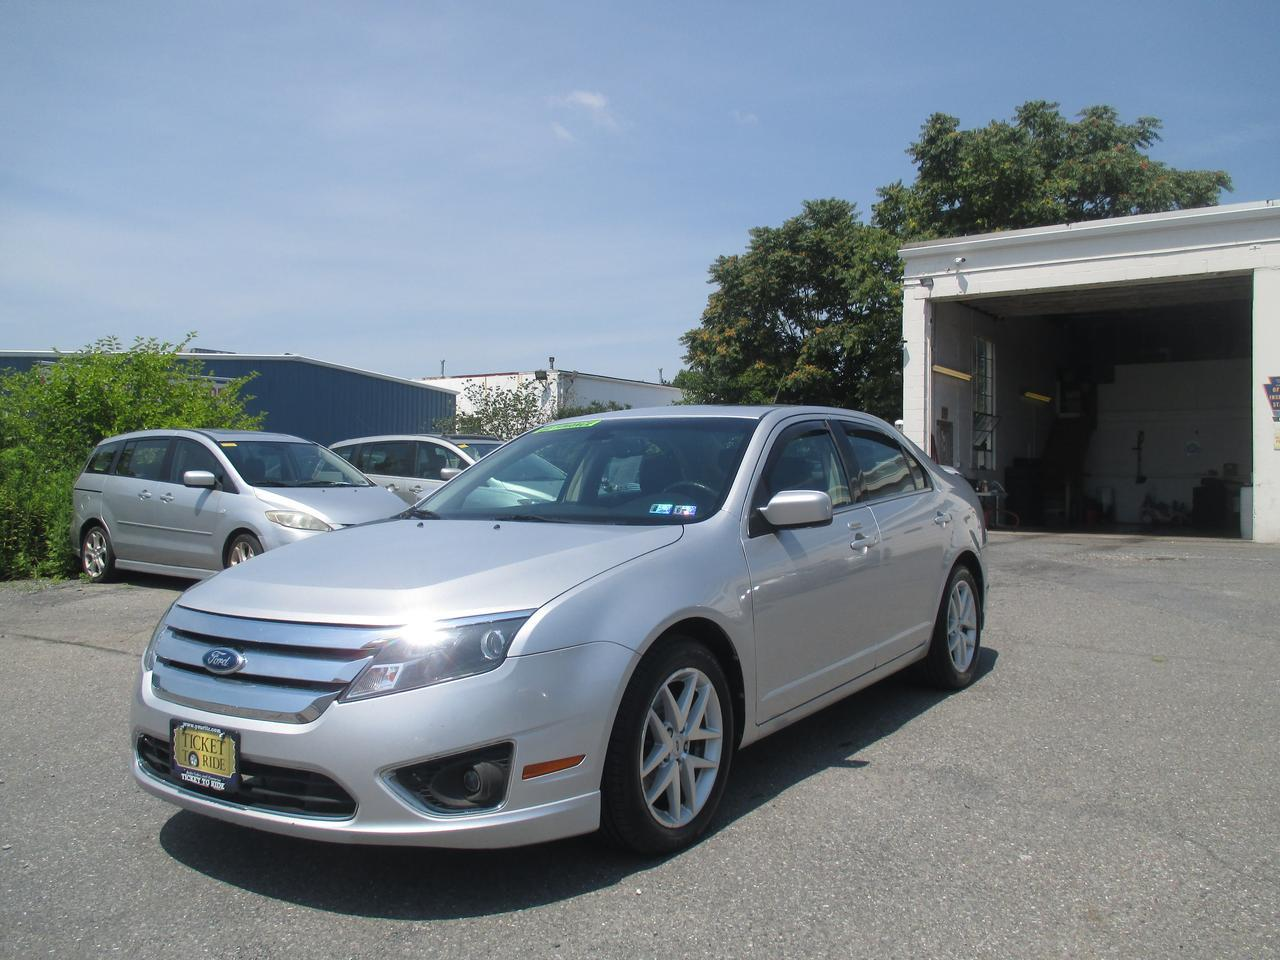 Used Car Dealerships In Lancaster Pa >> Used Cars Lancaster Pennsylvania Ticket To Ride